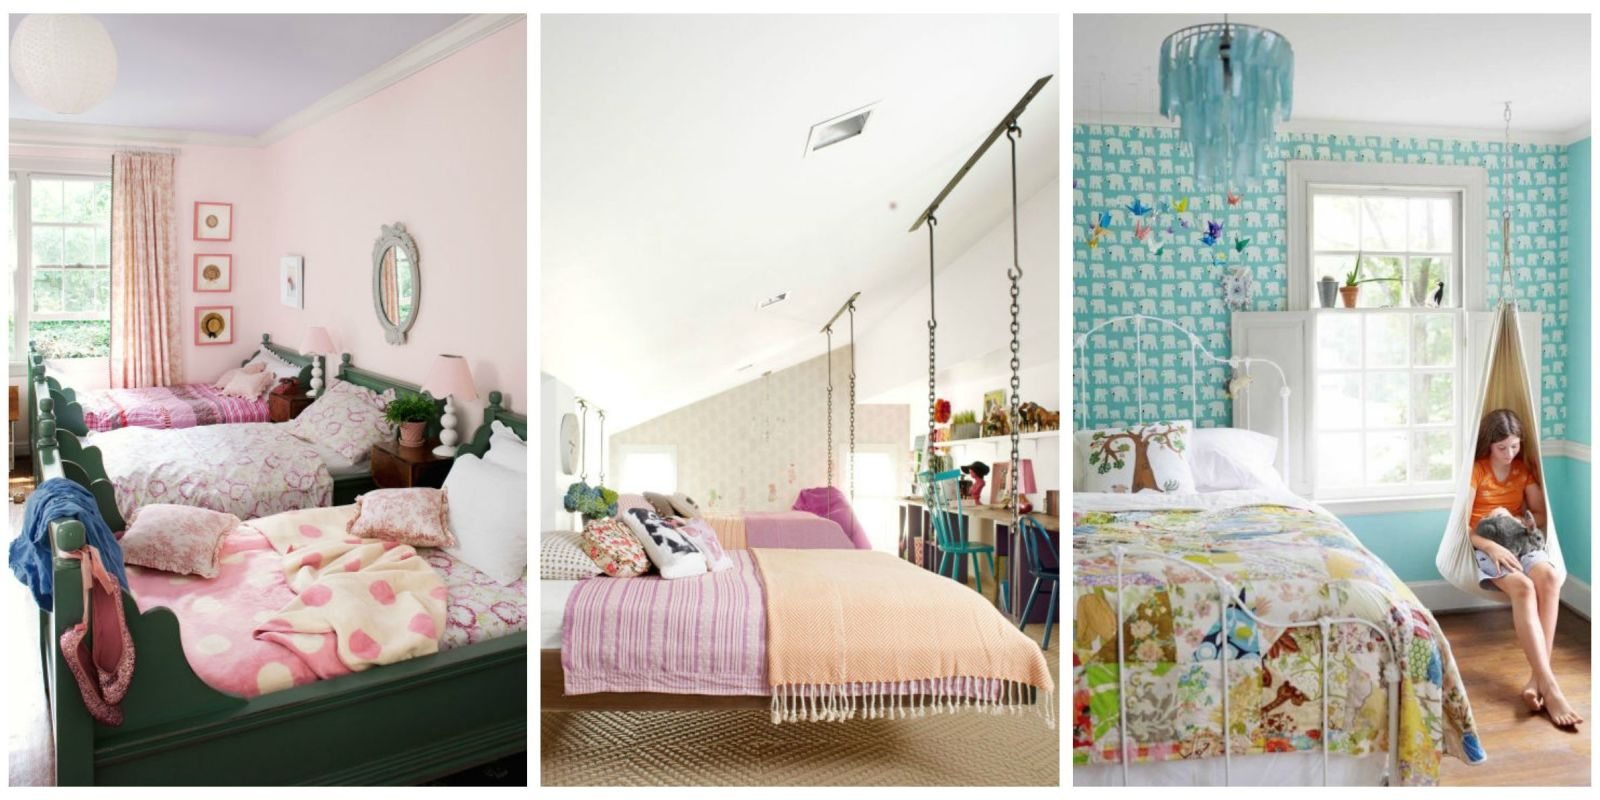 12 Fun And Feminine Bedroom Decorating Ideas For Girls